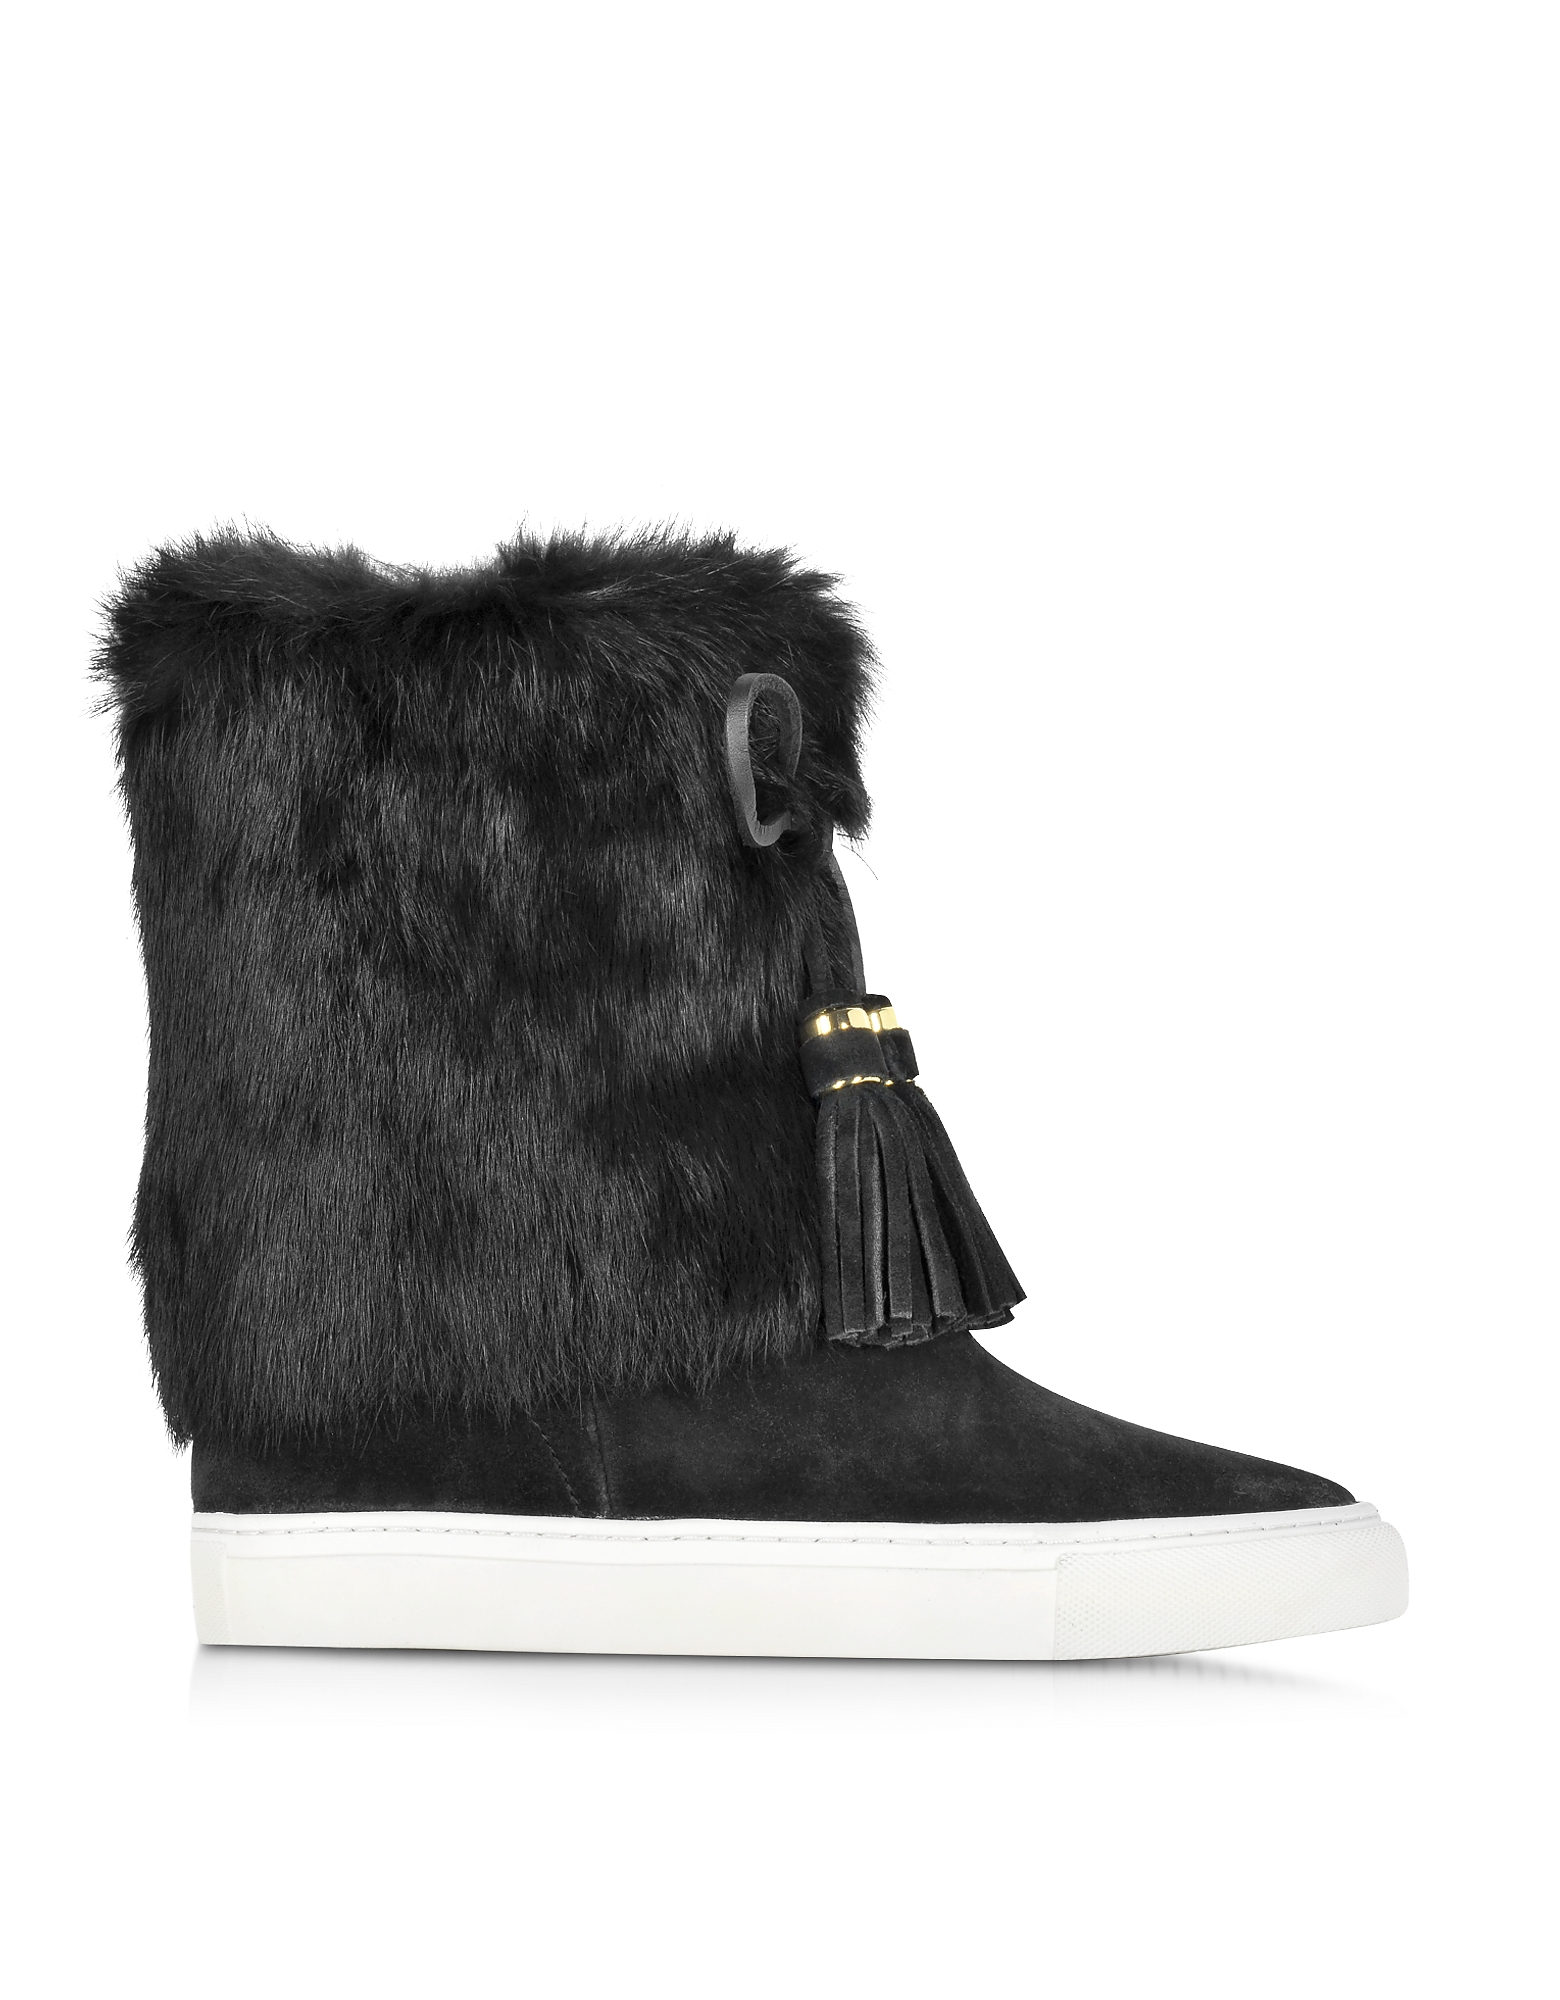 Tory Burch Shoes, Anjelica Black Suede and Rabbit Fur Boots